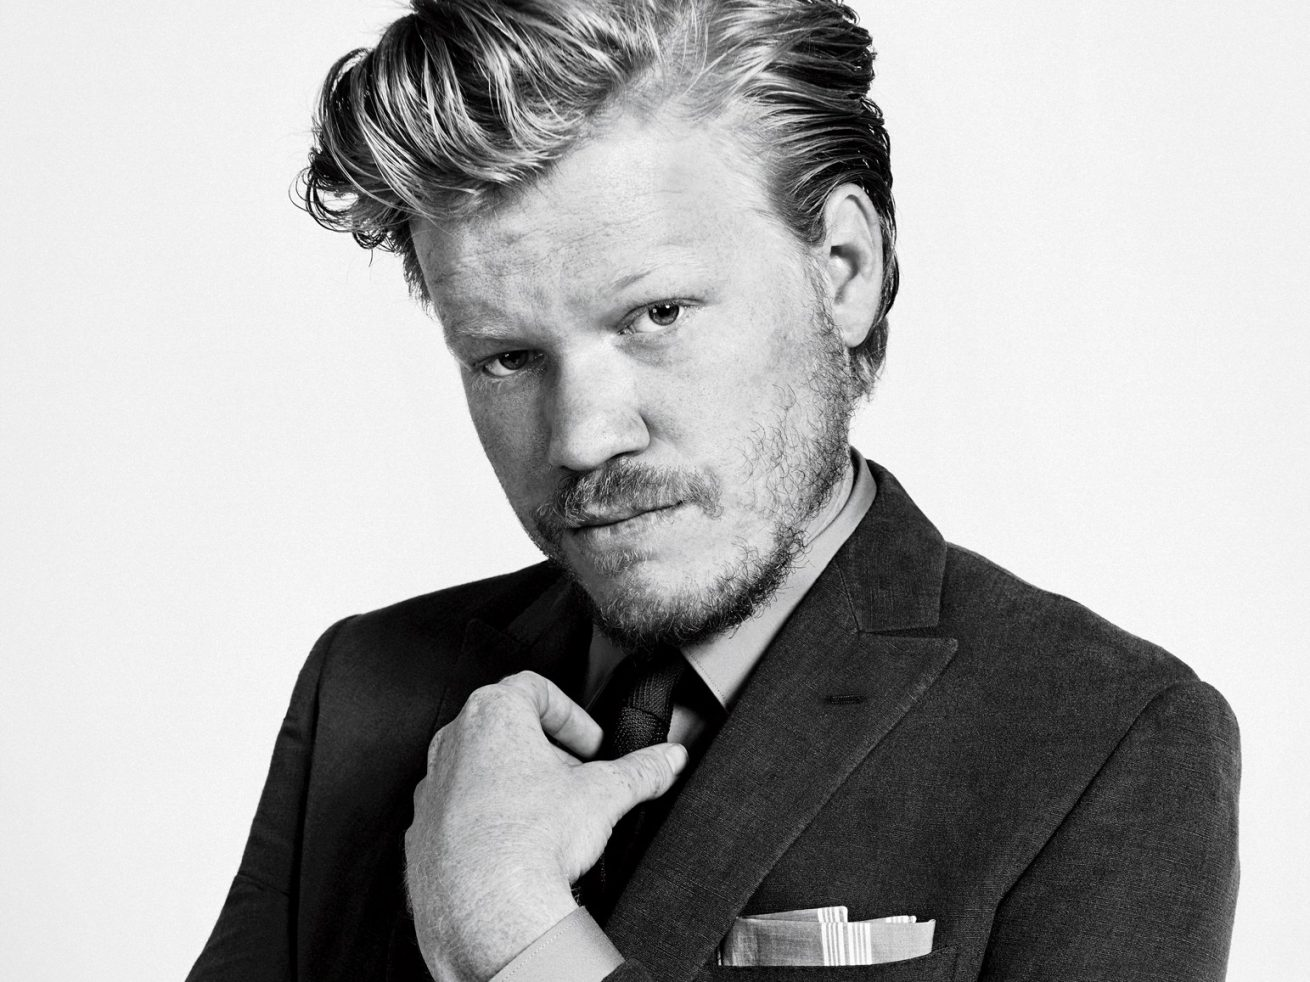 jesse plemons, martin scorsese'nin killers of the flower moon filmine katıldı